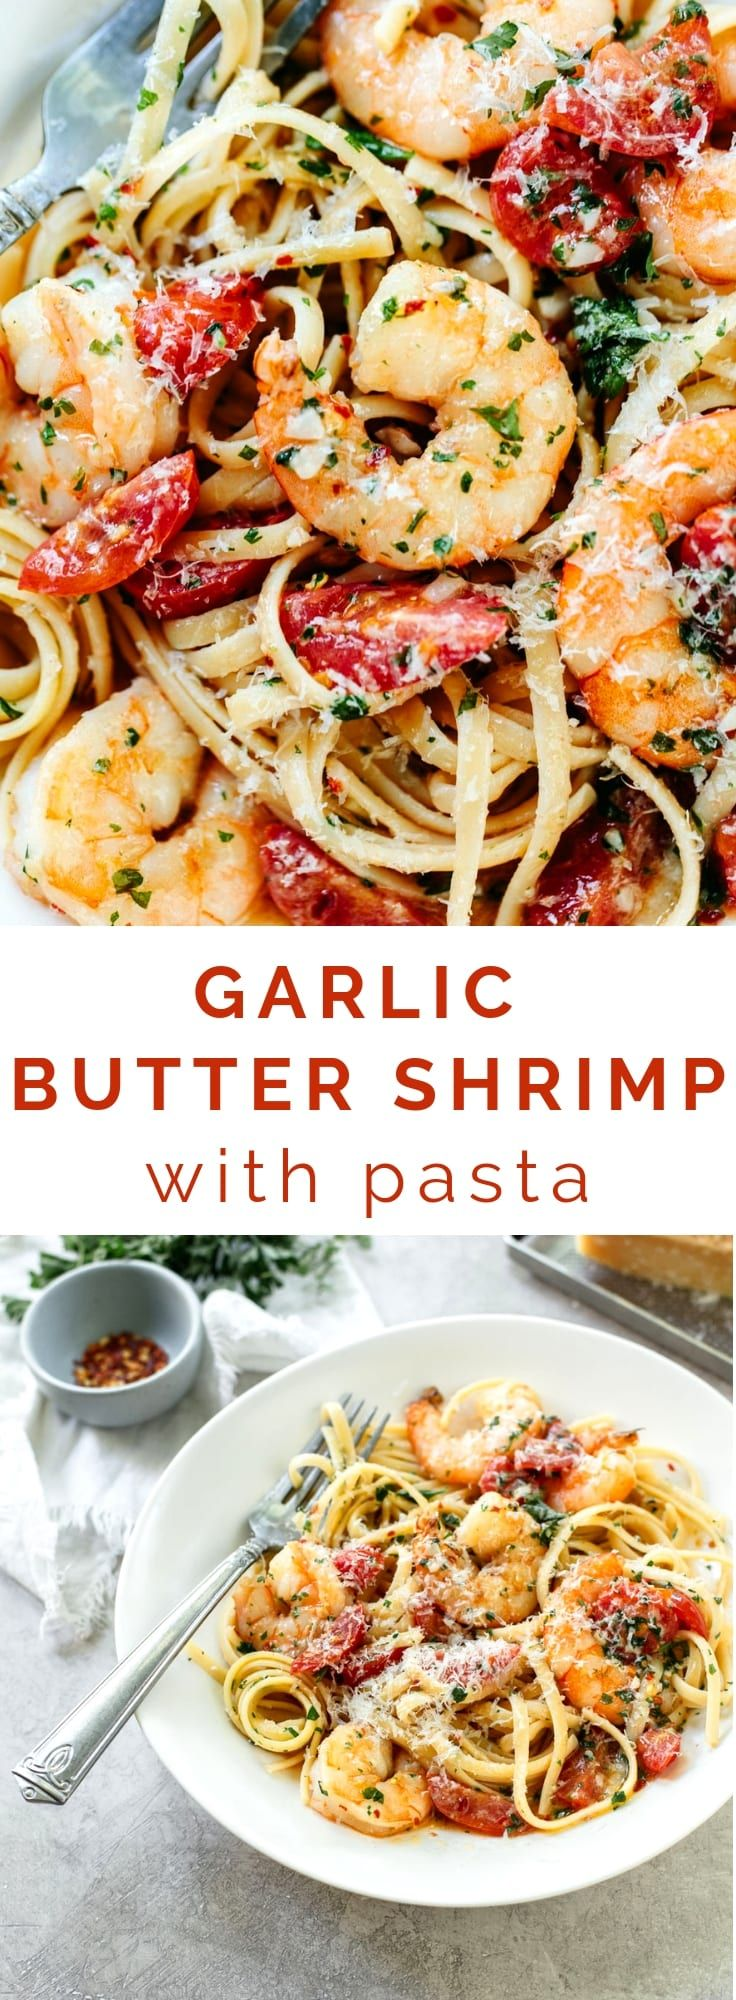 Garlic Butter Shrimp Pasta #shrimppasta